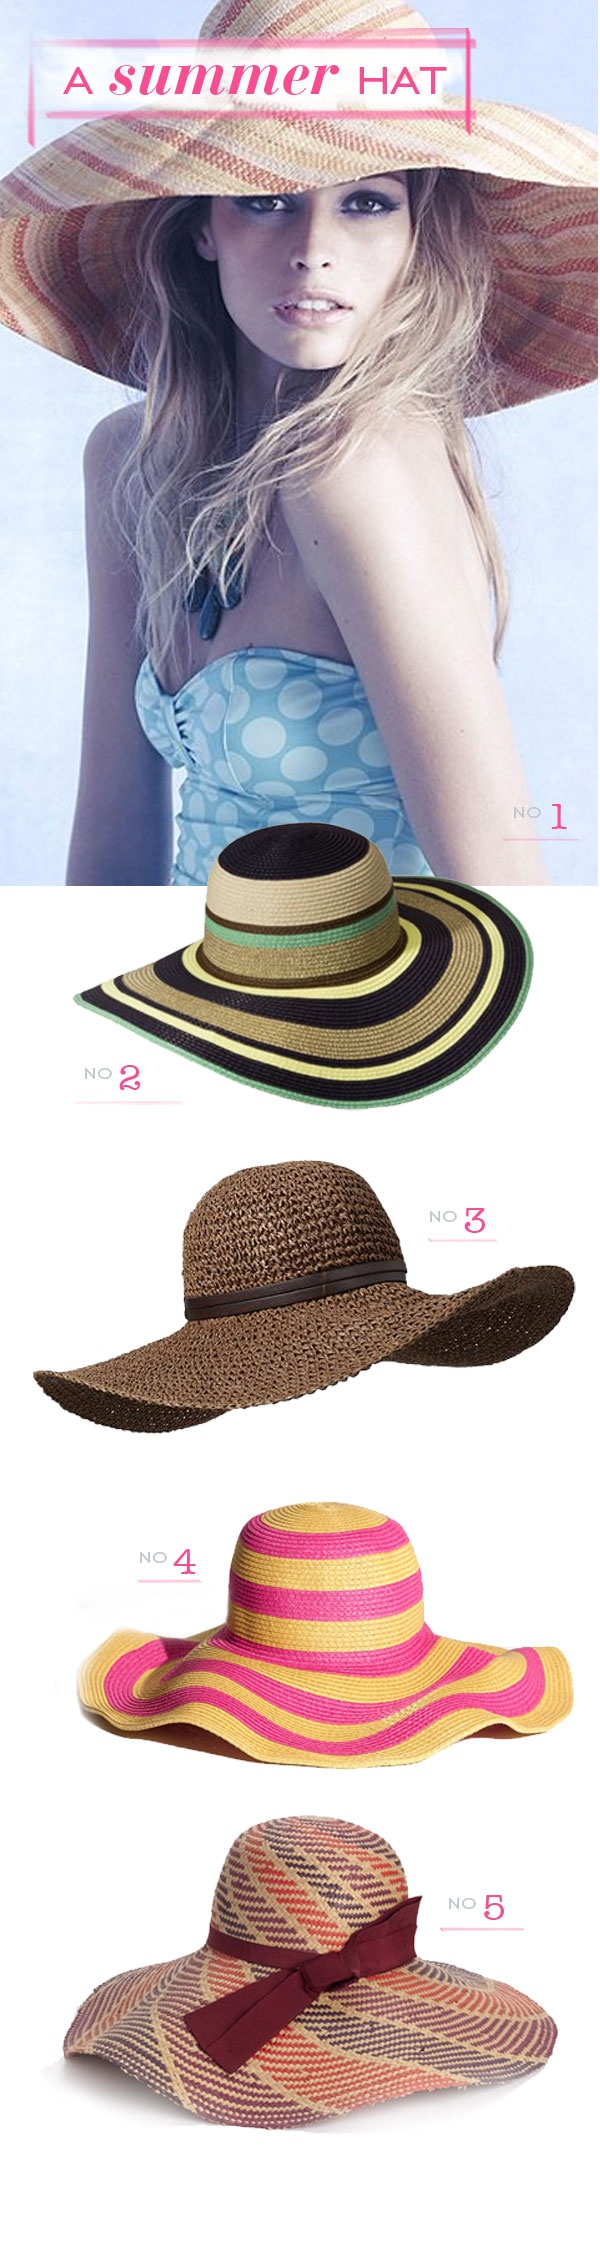 Floppy Summer hats. My dad said today I need to bring hats back. Challenge accepted. Lol. ;)